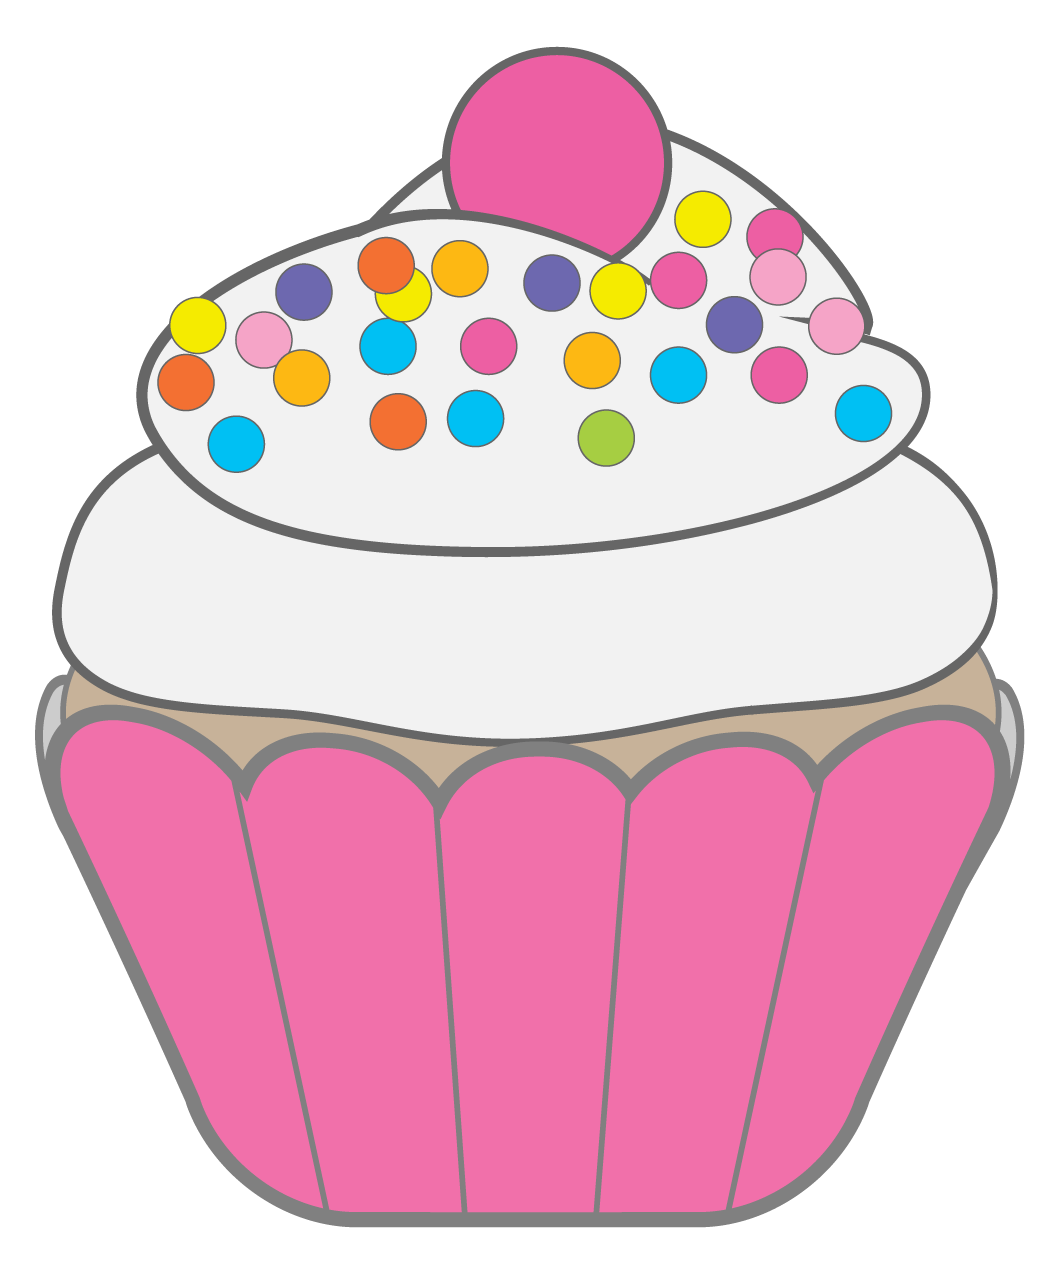 Free clipart for thanksgiving cake decorations vector transparent Cupcakes / Muffins | Pinterest | Cupcake pictures, Clip art and ... vector transparent